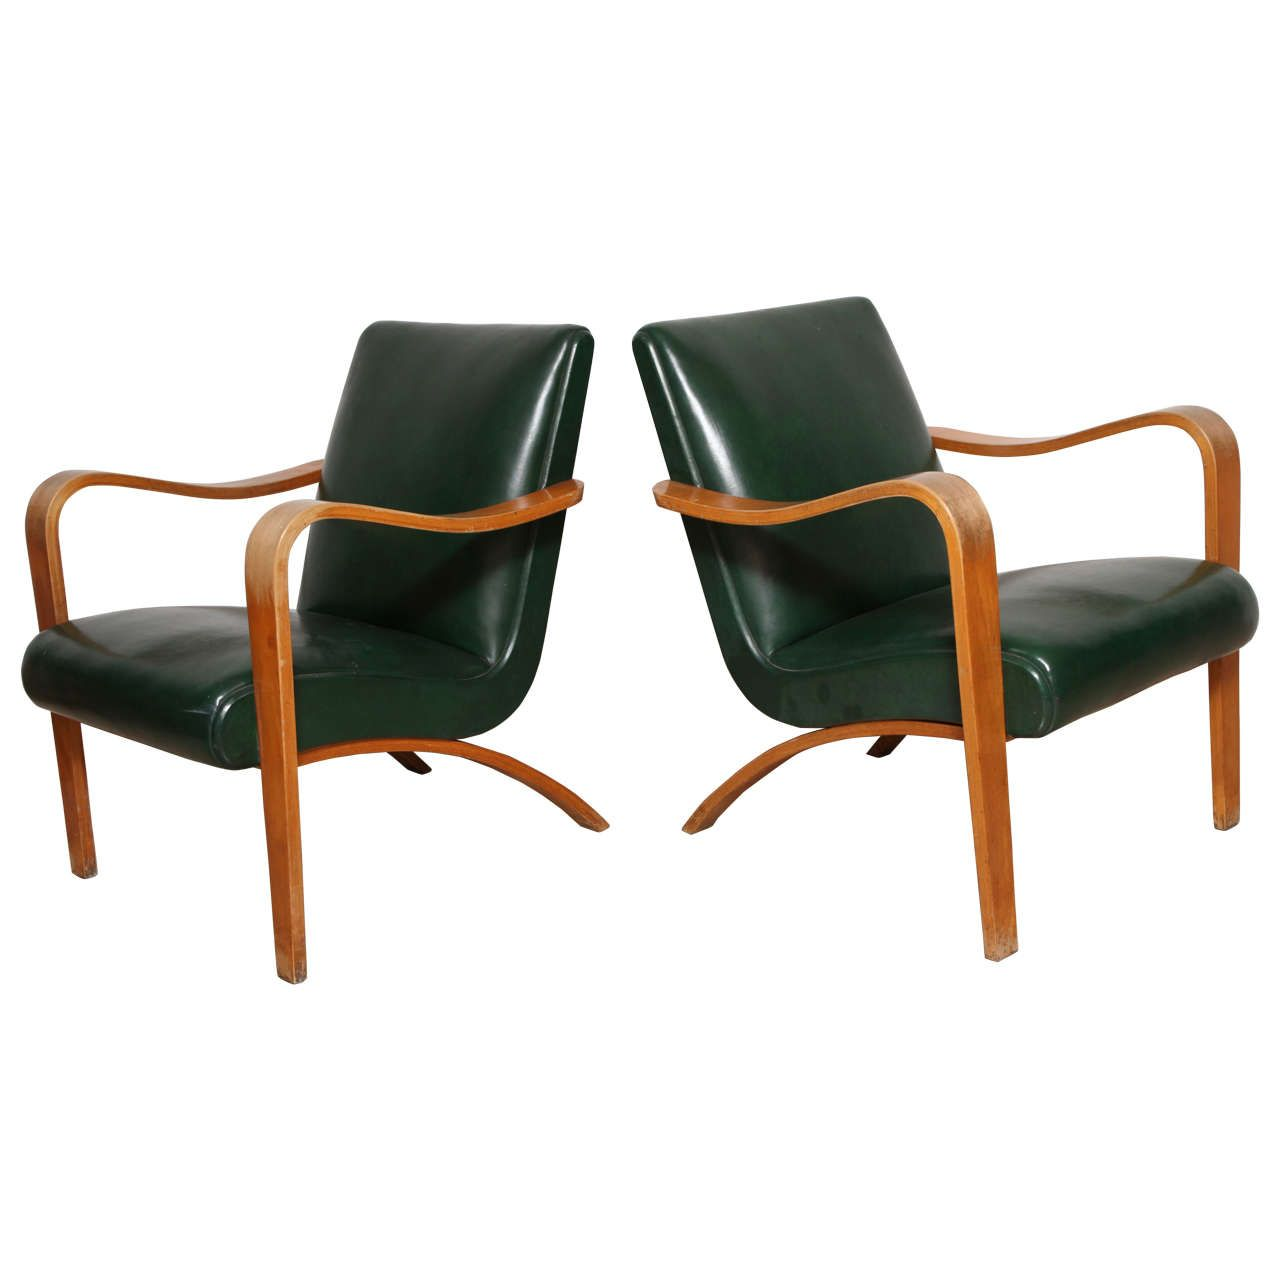 Enjoyable Pair Of 1940S Thonet Bentwood Lounge Chairs Furniture Gmtry Best Dining Table And Chair Ideas Images Gmtryco